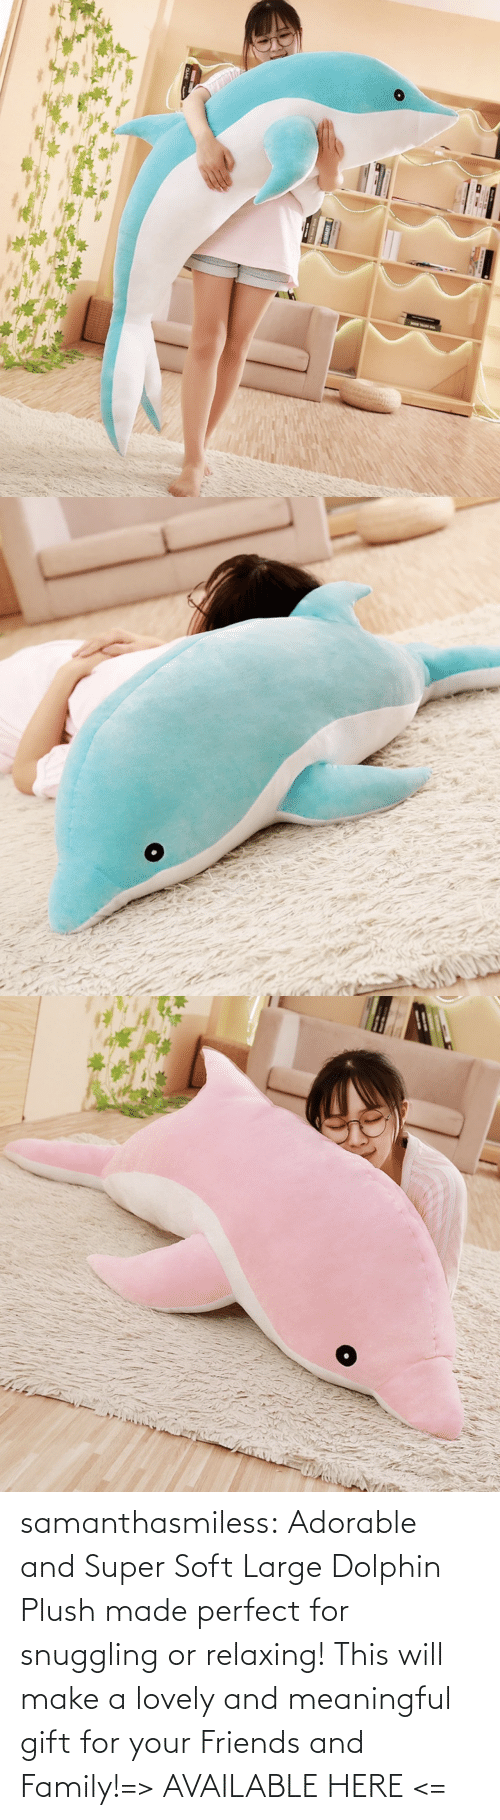 Family, Friends, and Tumblr: samanthasmiless:  Adorable and Super Soft Large Dolphin Plush made perfect for snuggling or relaxing! This will make a lovely and meaningful gift for your Friends and Family!=> AVAILABLE HERE <=